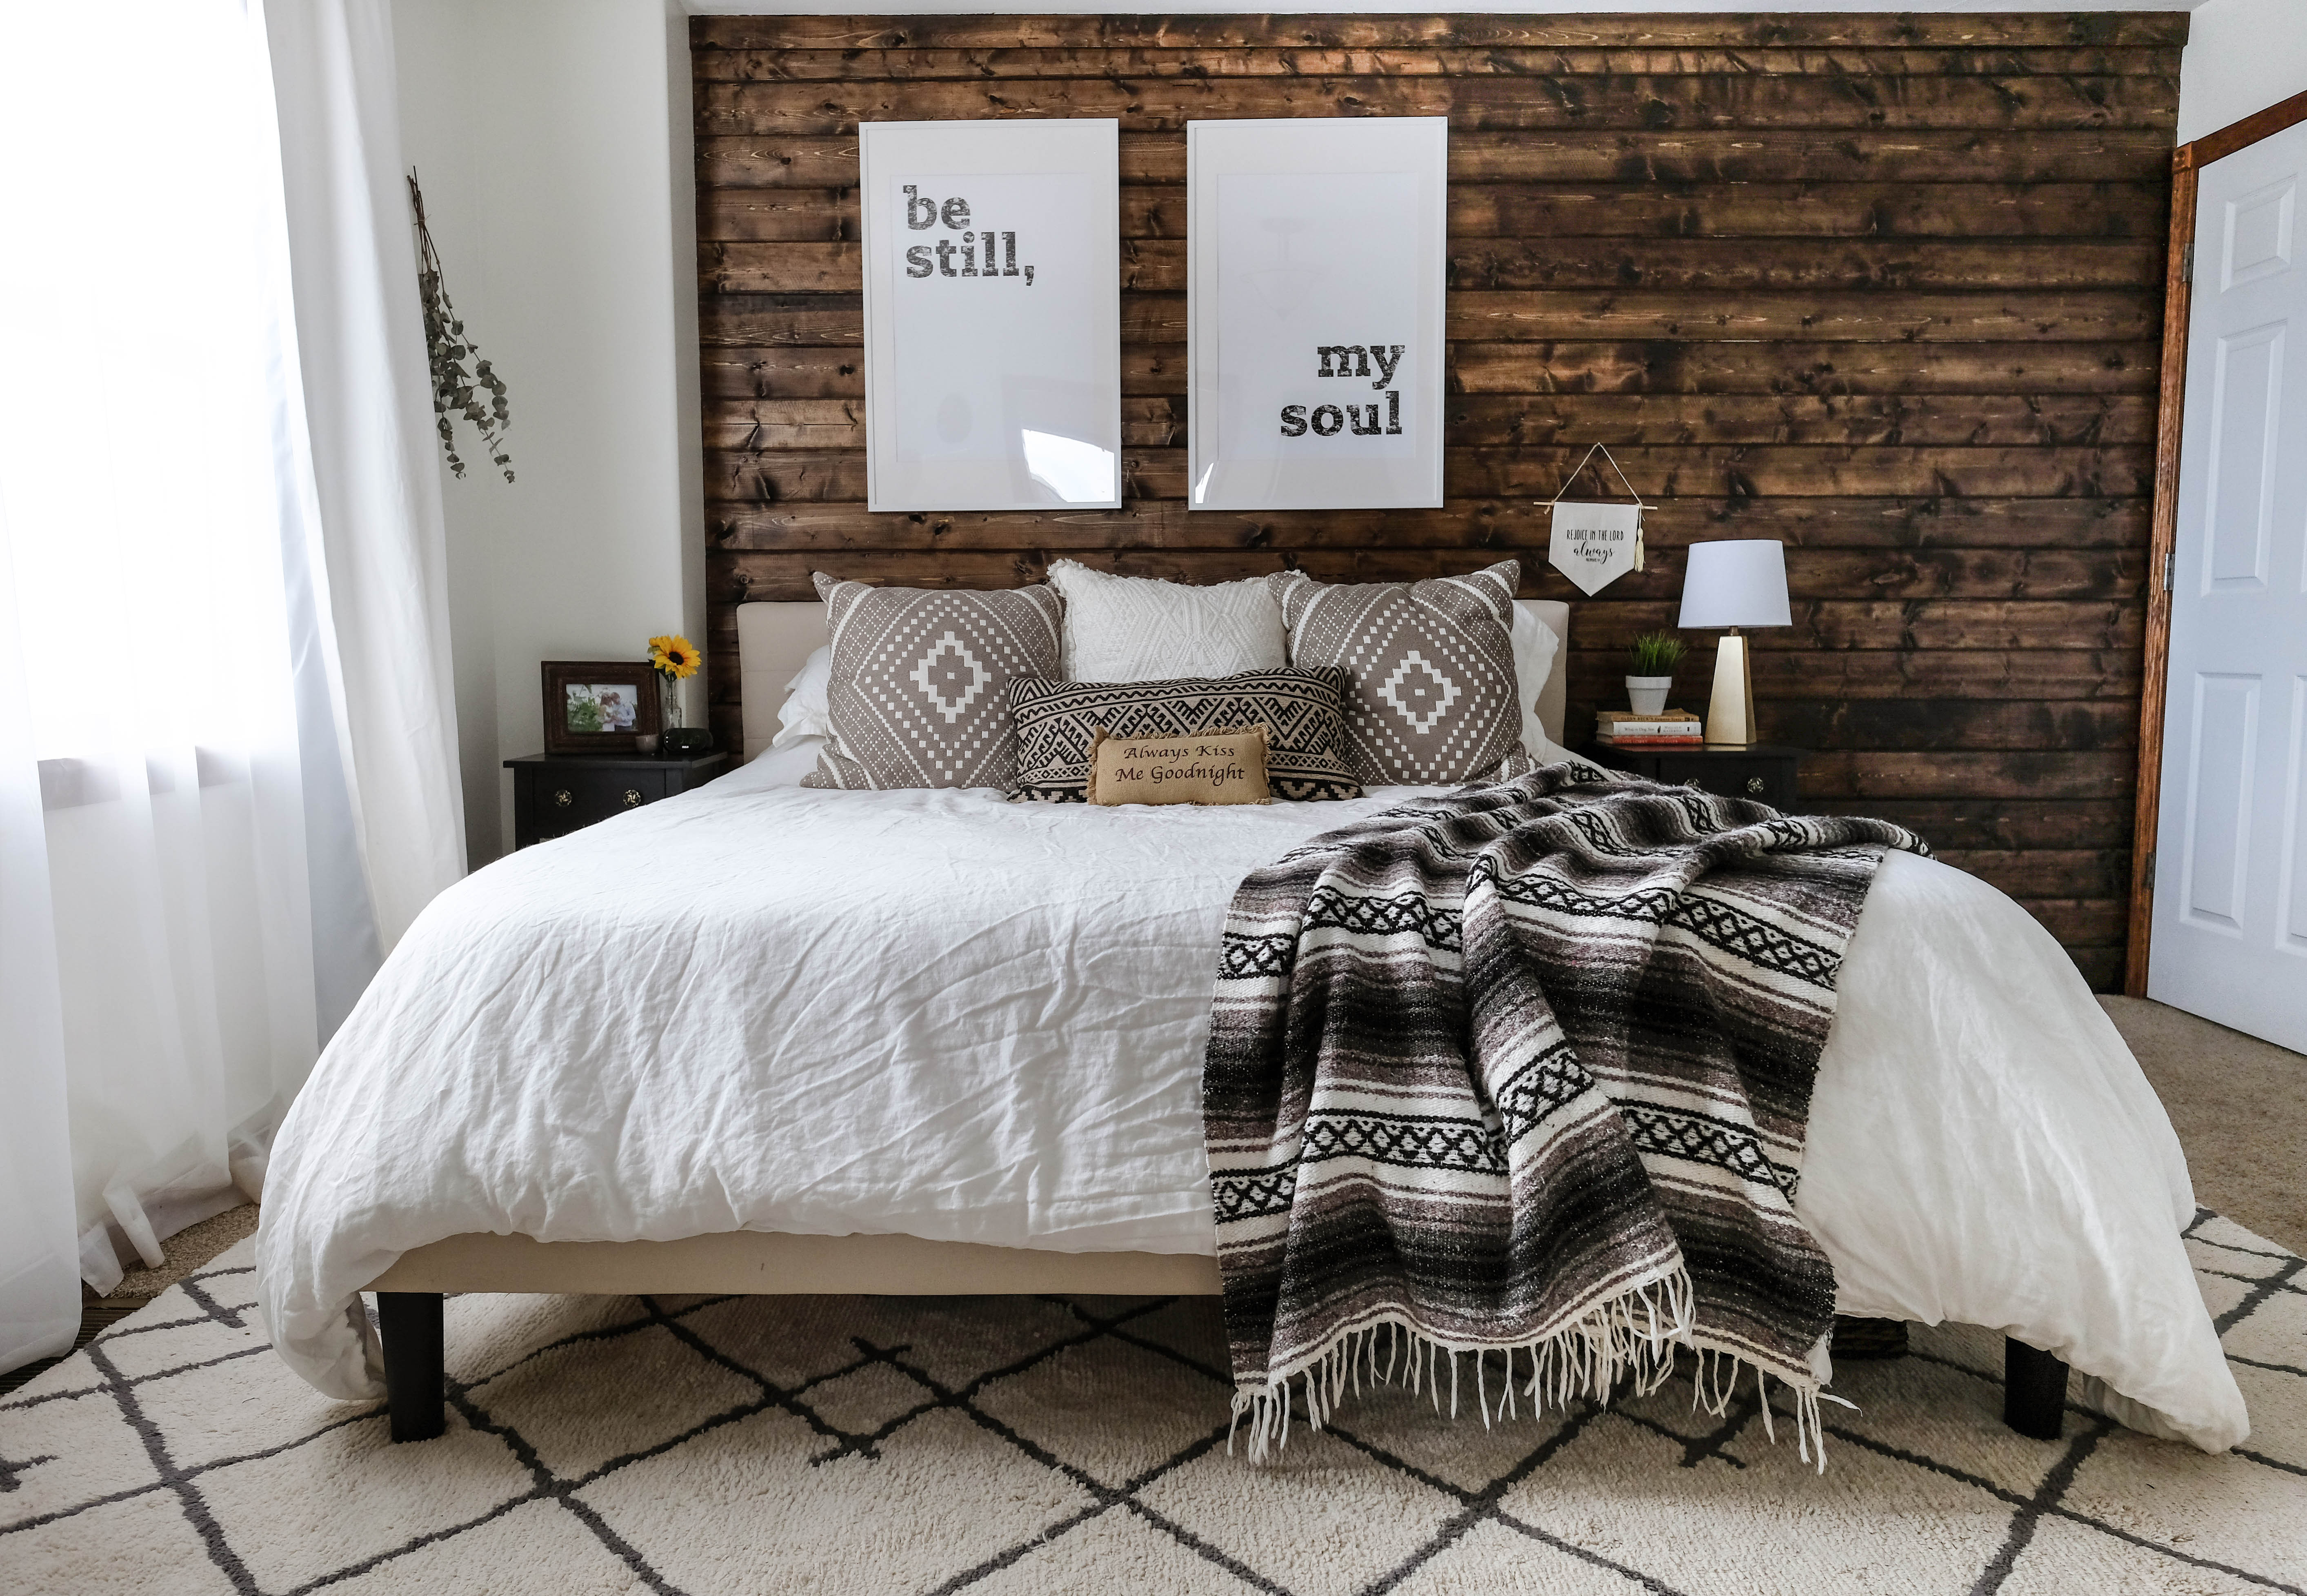 Best ideas about Wood Accent Wall Bedroom . Save or Pin How To Build A Wood Plank Accent Wall Now.